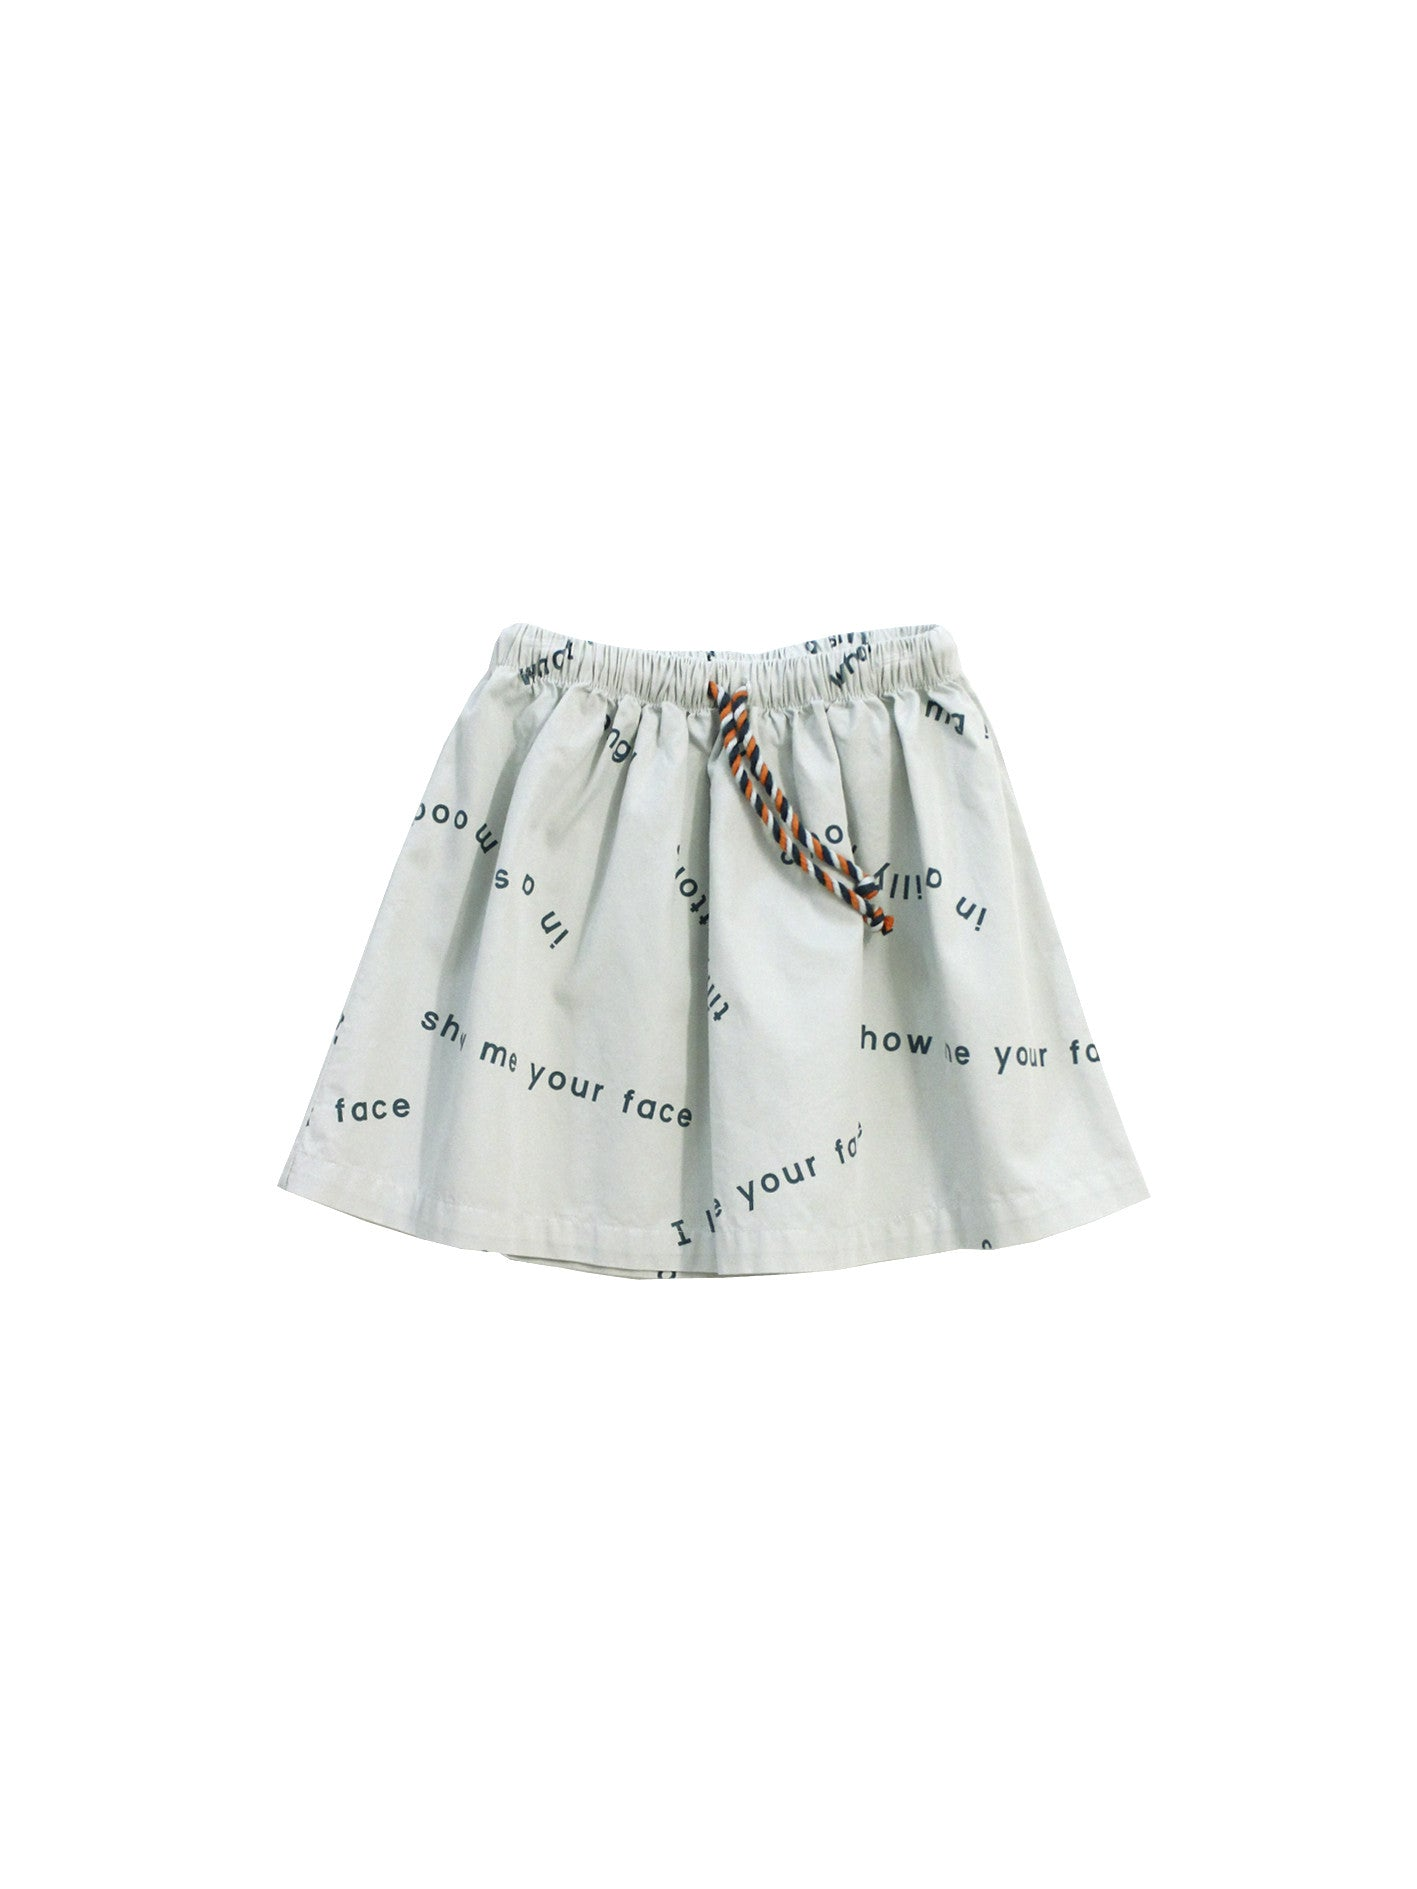 TINY COTTONS - Many Words Woven Skirt / Light Blue